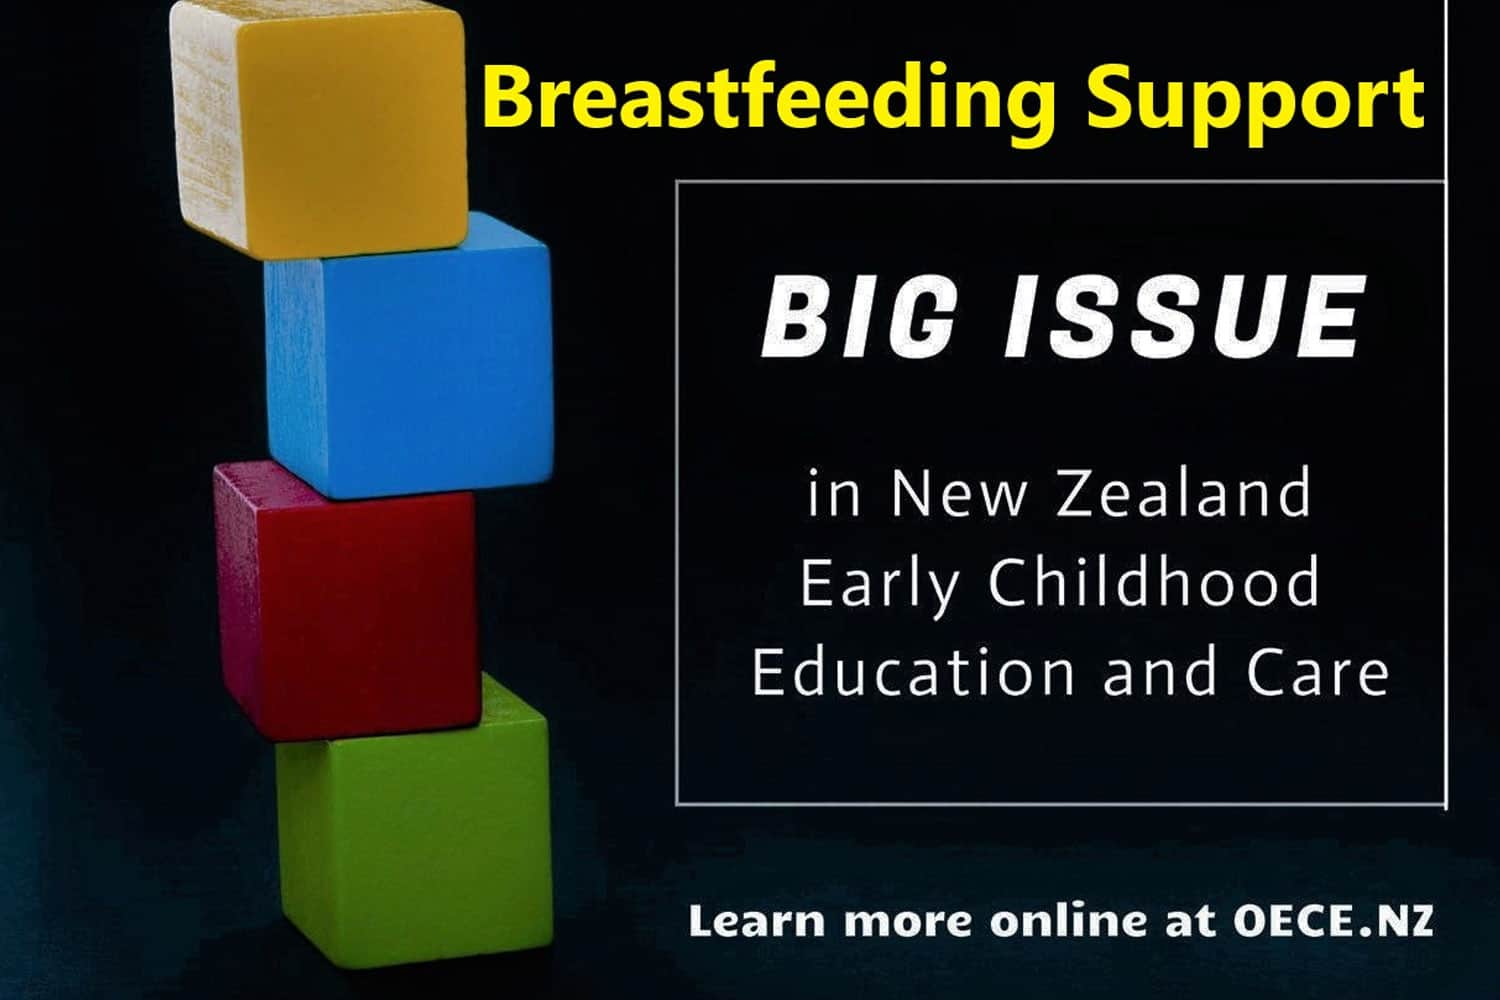 Breastfeeding Support in Childcare Services